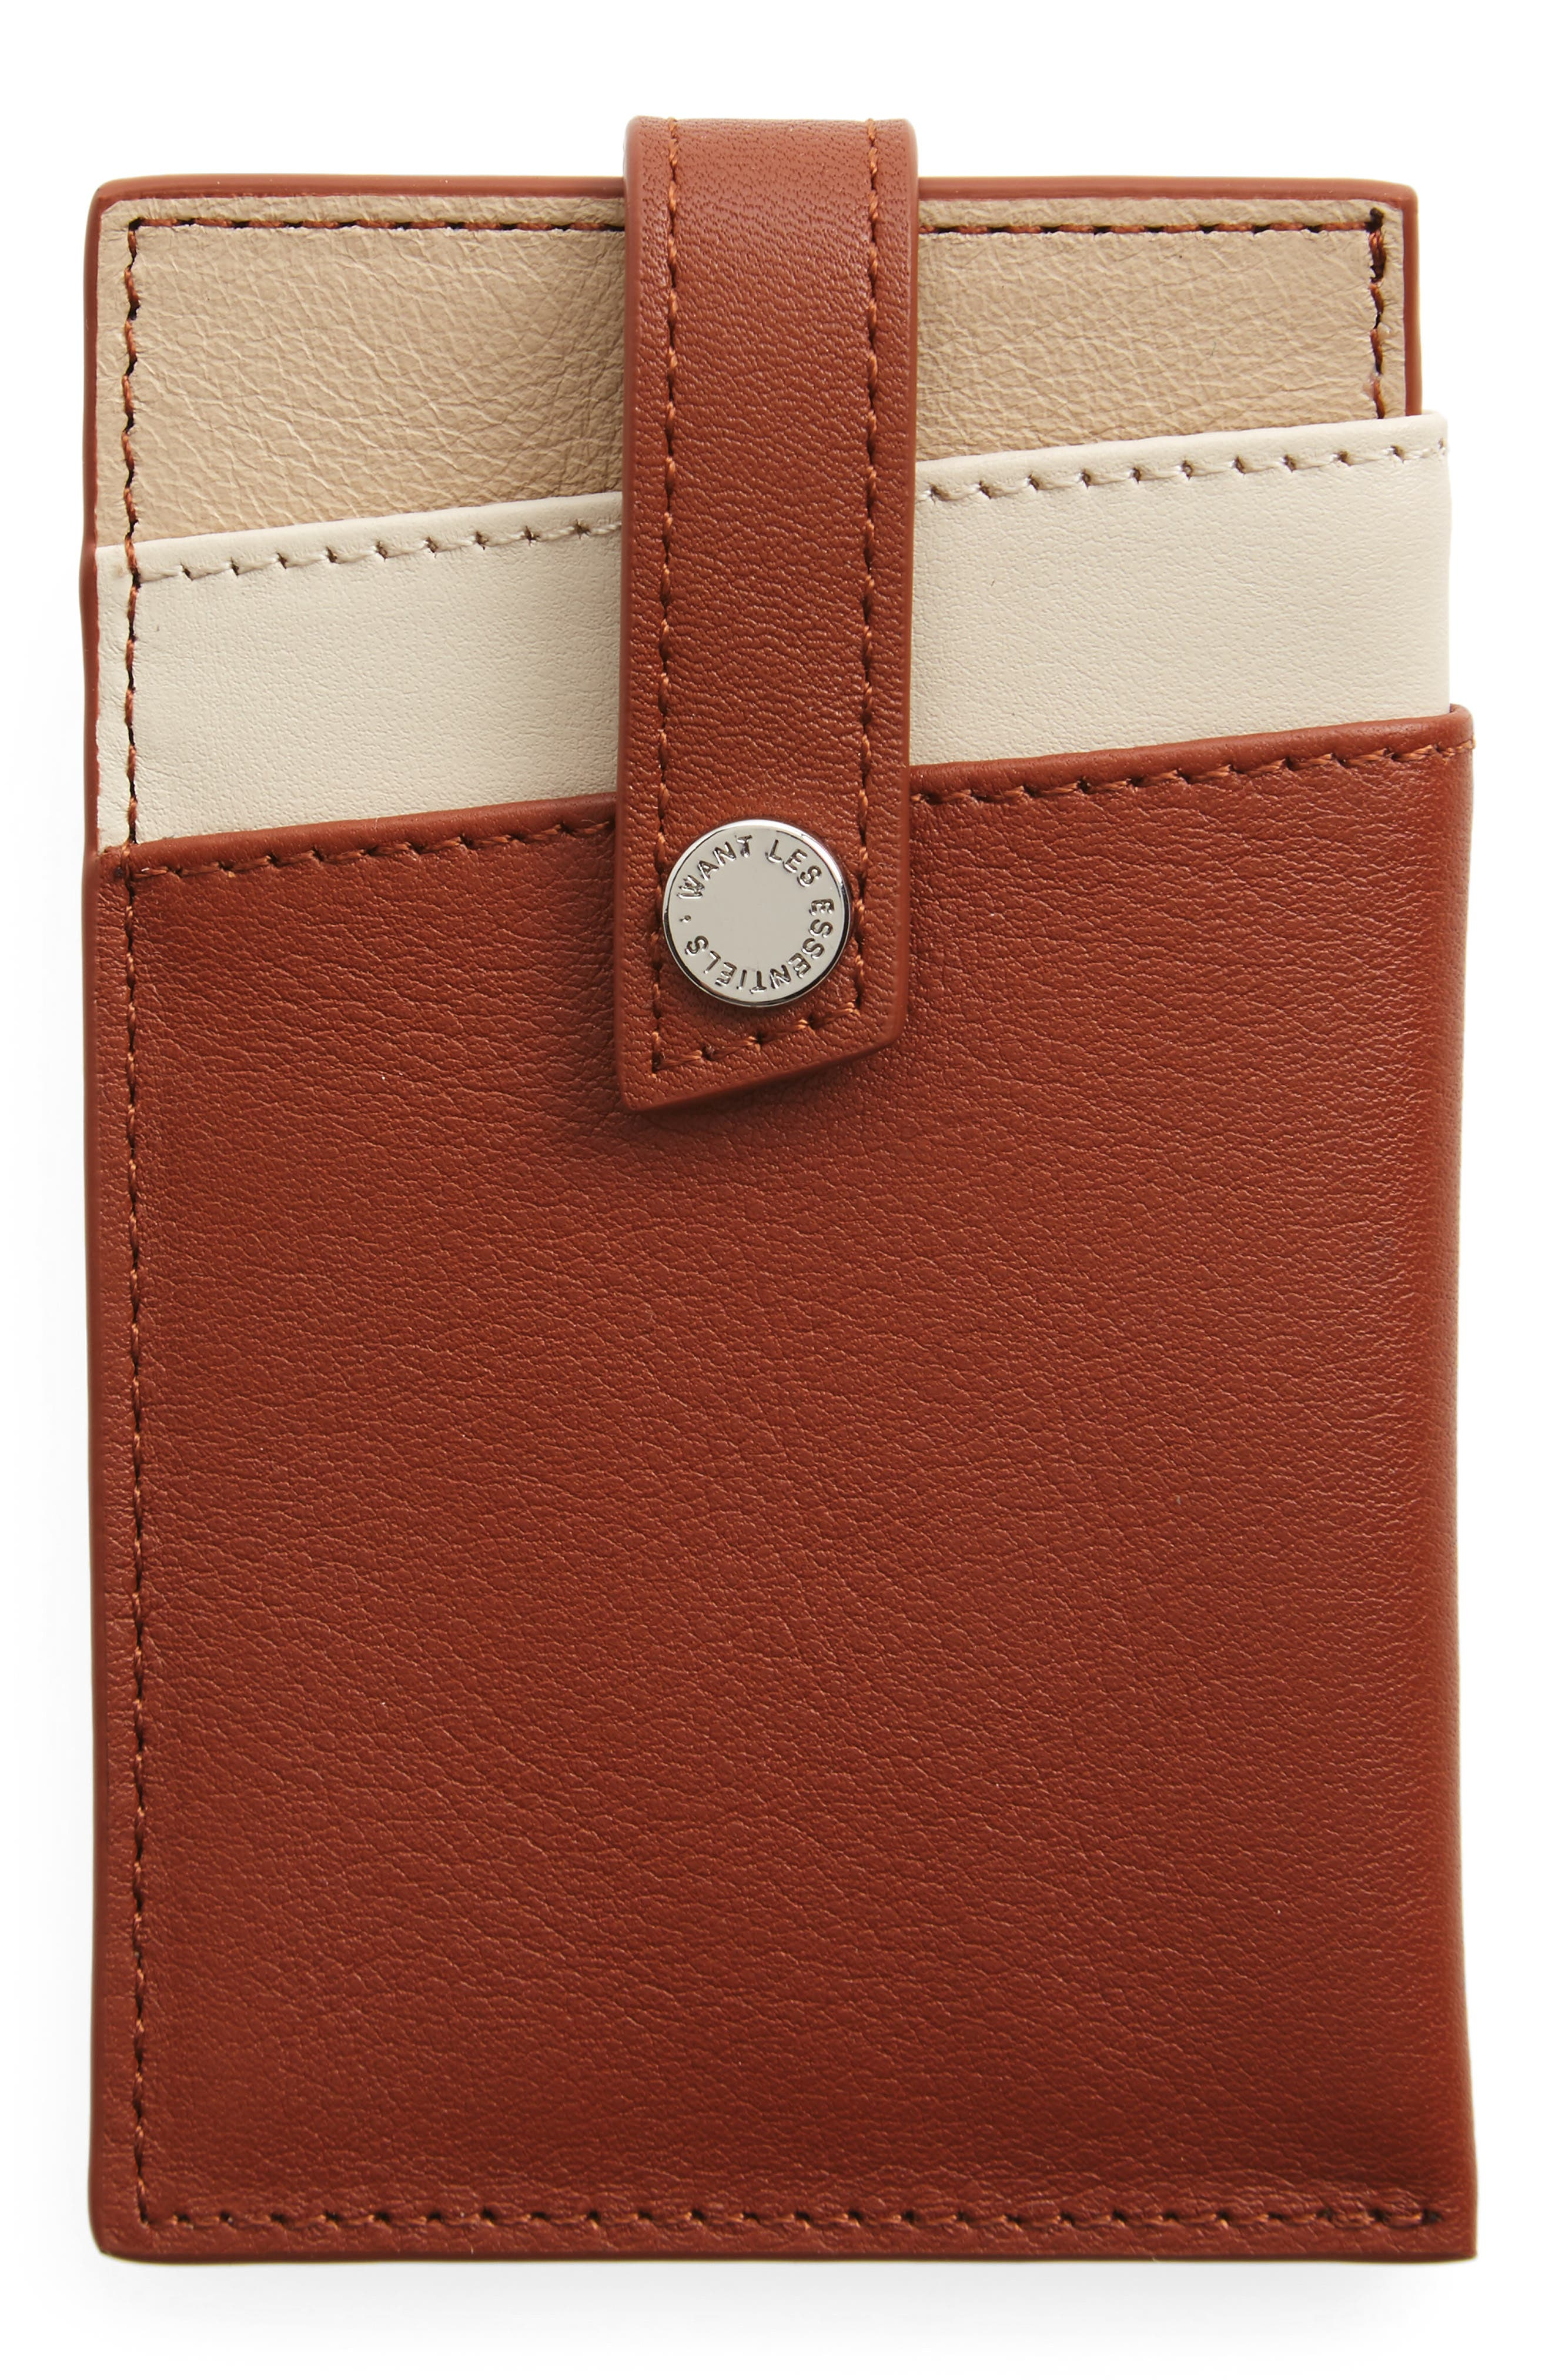 'Kennedy' Leather Money Clip Card Case,                             Alternate thumbnail 2, color,                             212